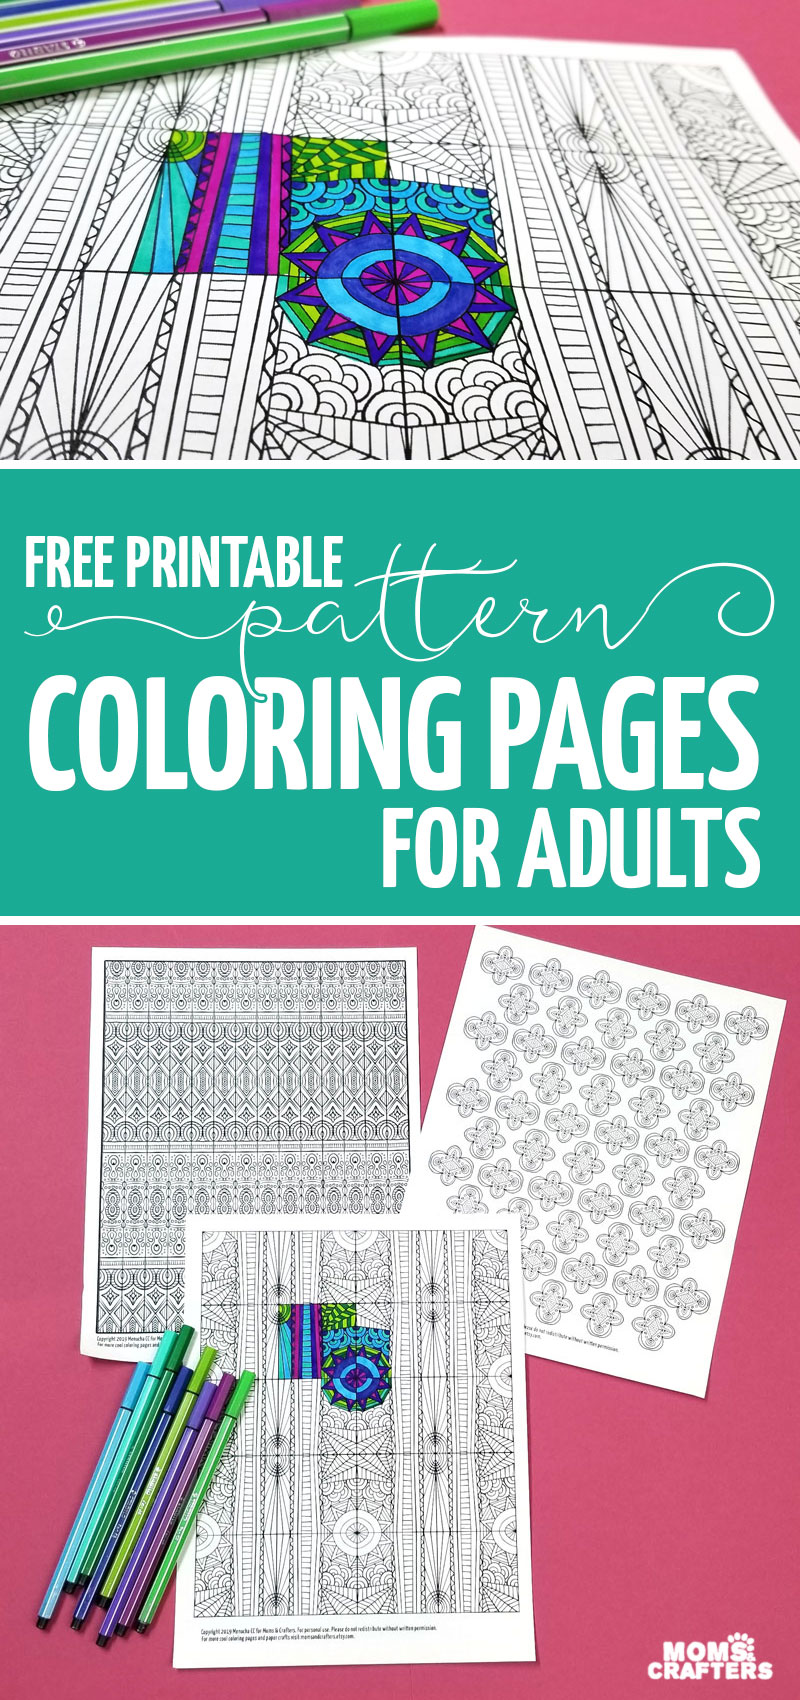 Free Printables! These pattern coloring pages are fun to use in DIY cards, gift wrap, and other paper crafts. Or color these coloring pages for adults just for fun, relaxation, meditation, and to relieve stress. Patterns make great anti anxiety coloring pages!